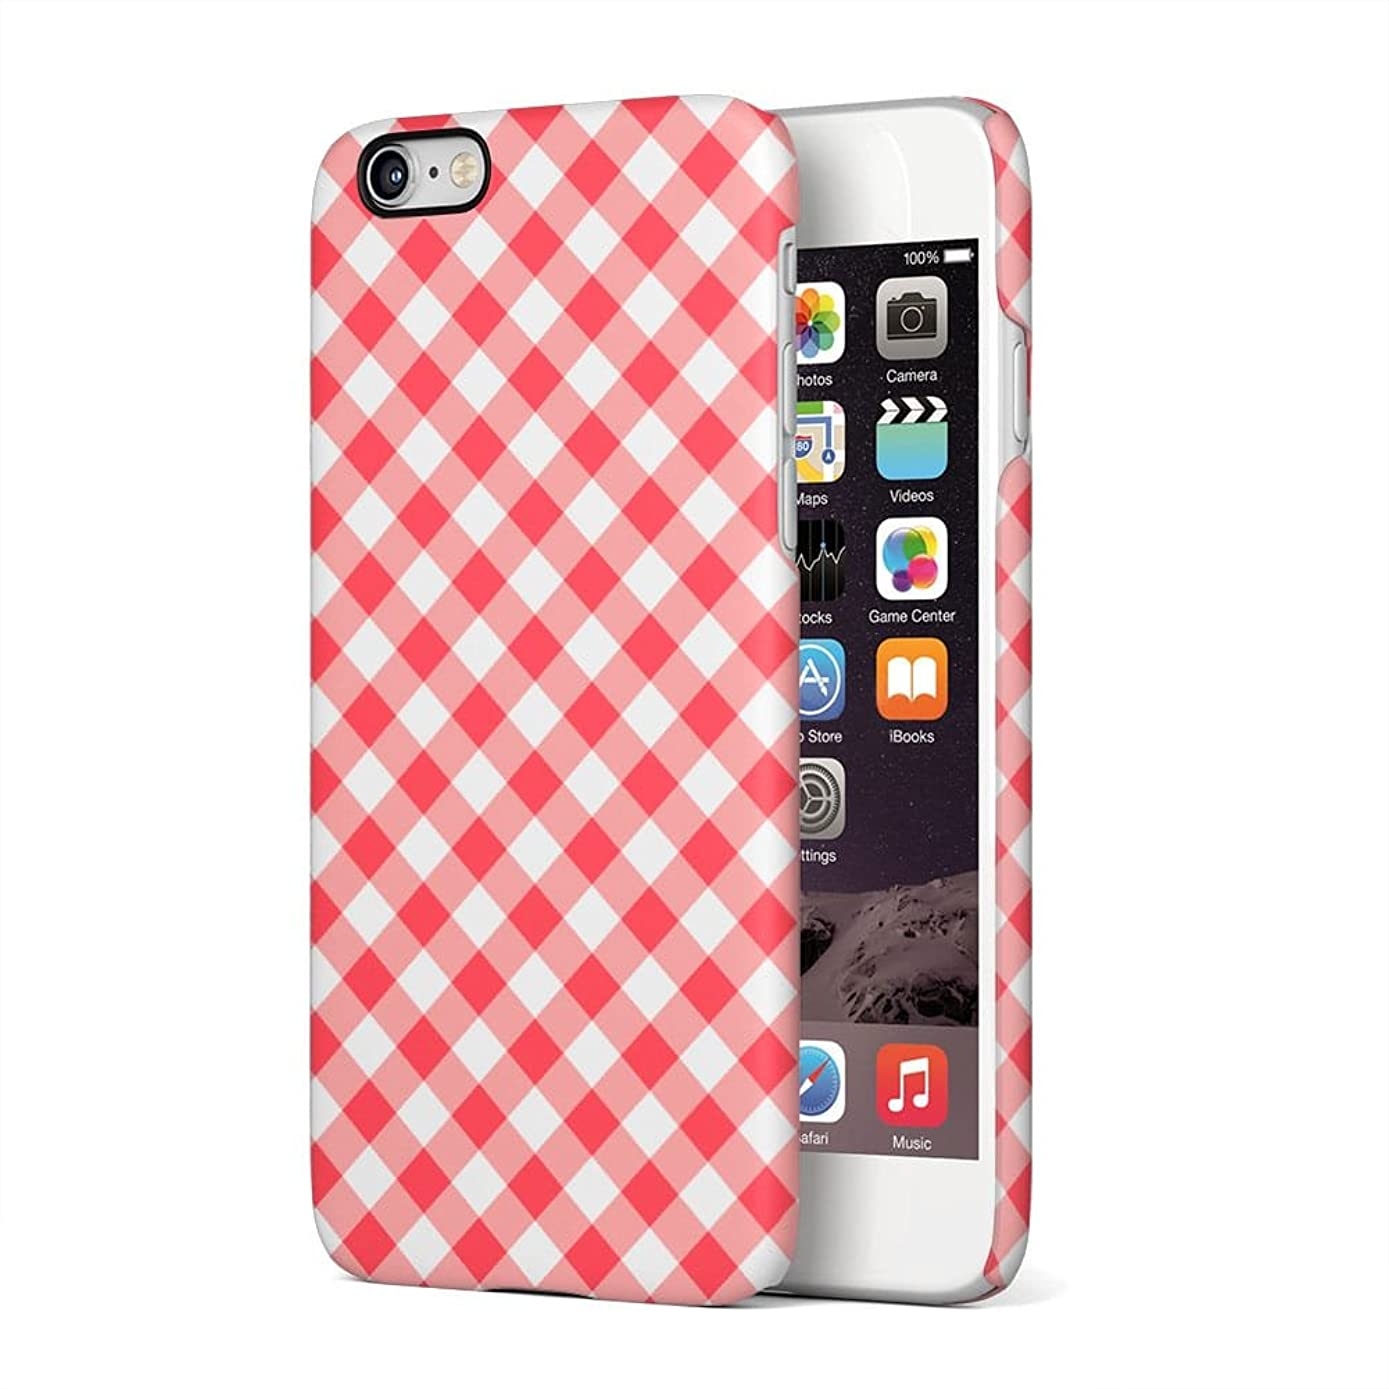 Red Vintage Checkered Tablecloth Pattern Apple iPhone 6 Plus, iPhone 6s Plus Plastic Phone Protective Case Cover